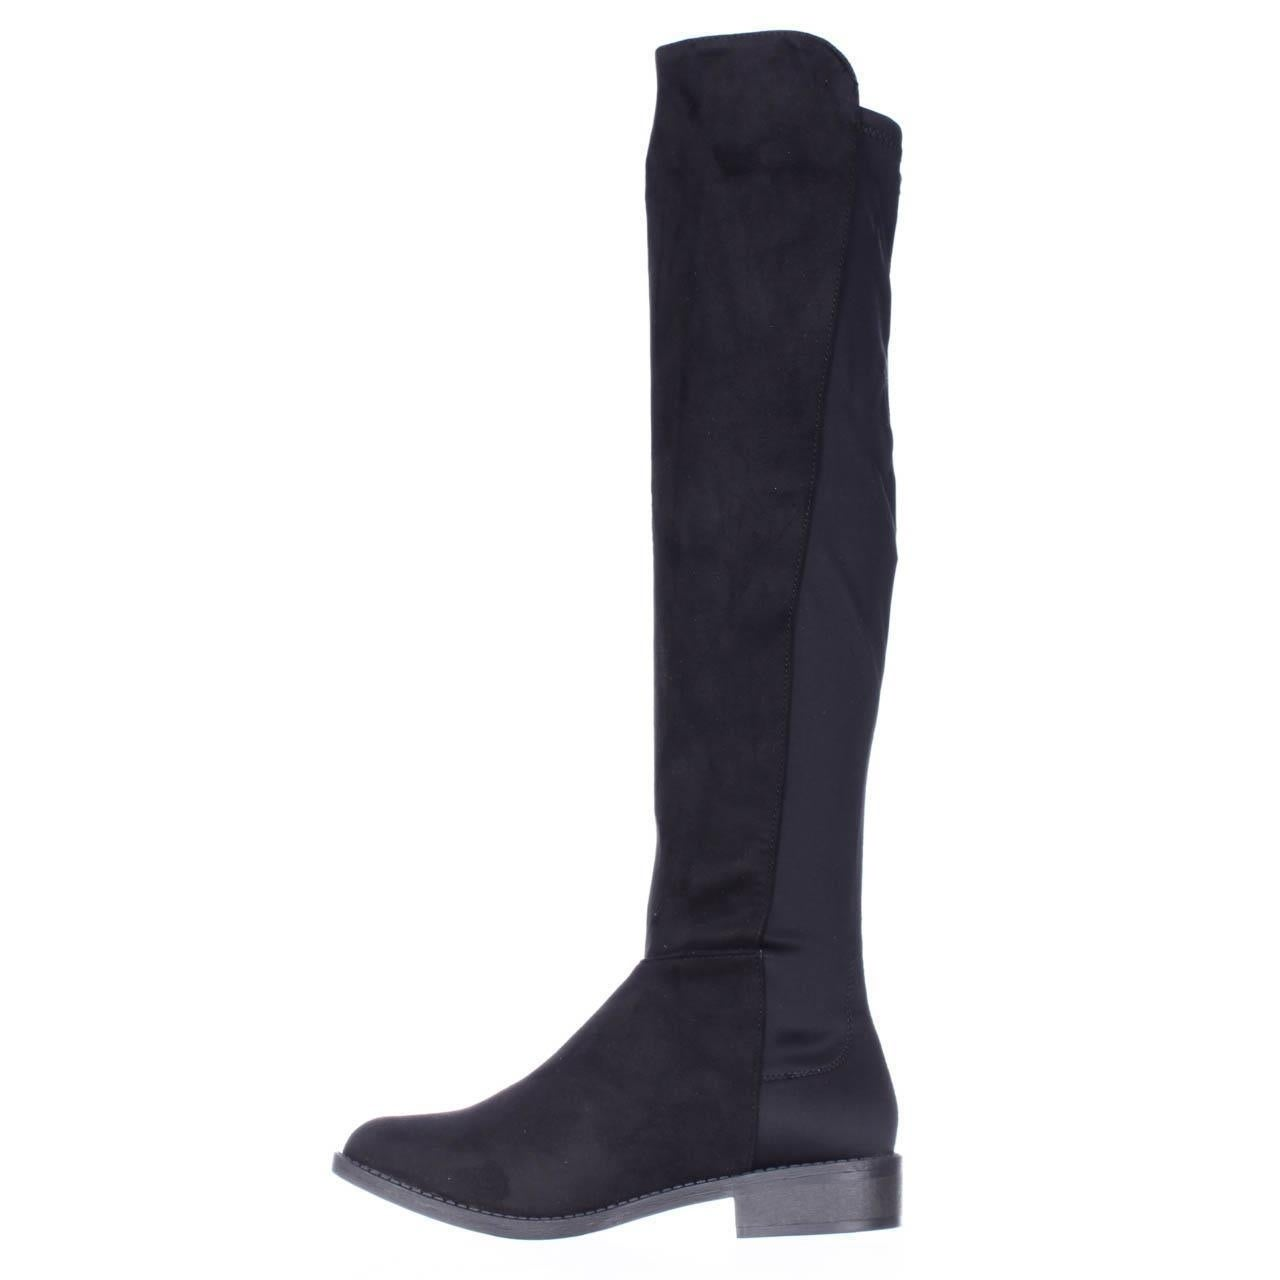 08378cb2e980 Shop Rebel by Zigi Olaa Over The Knee Stretch Back Boots